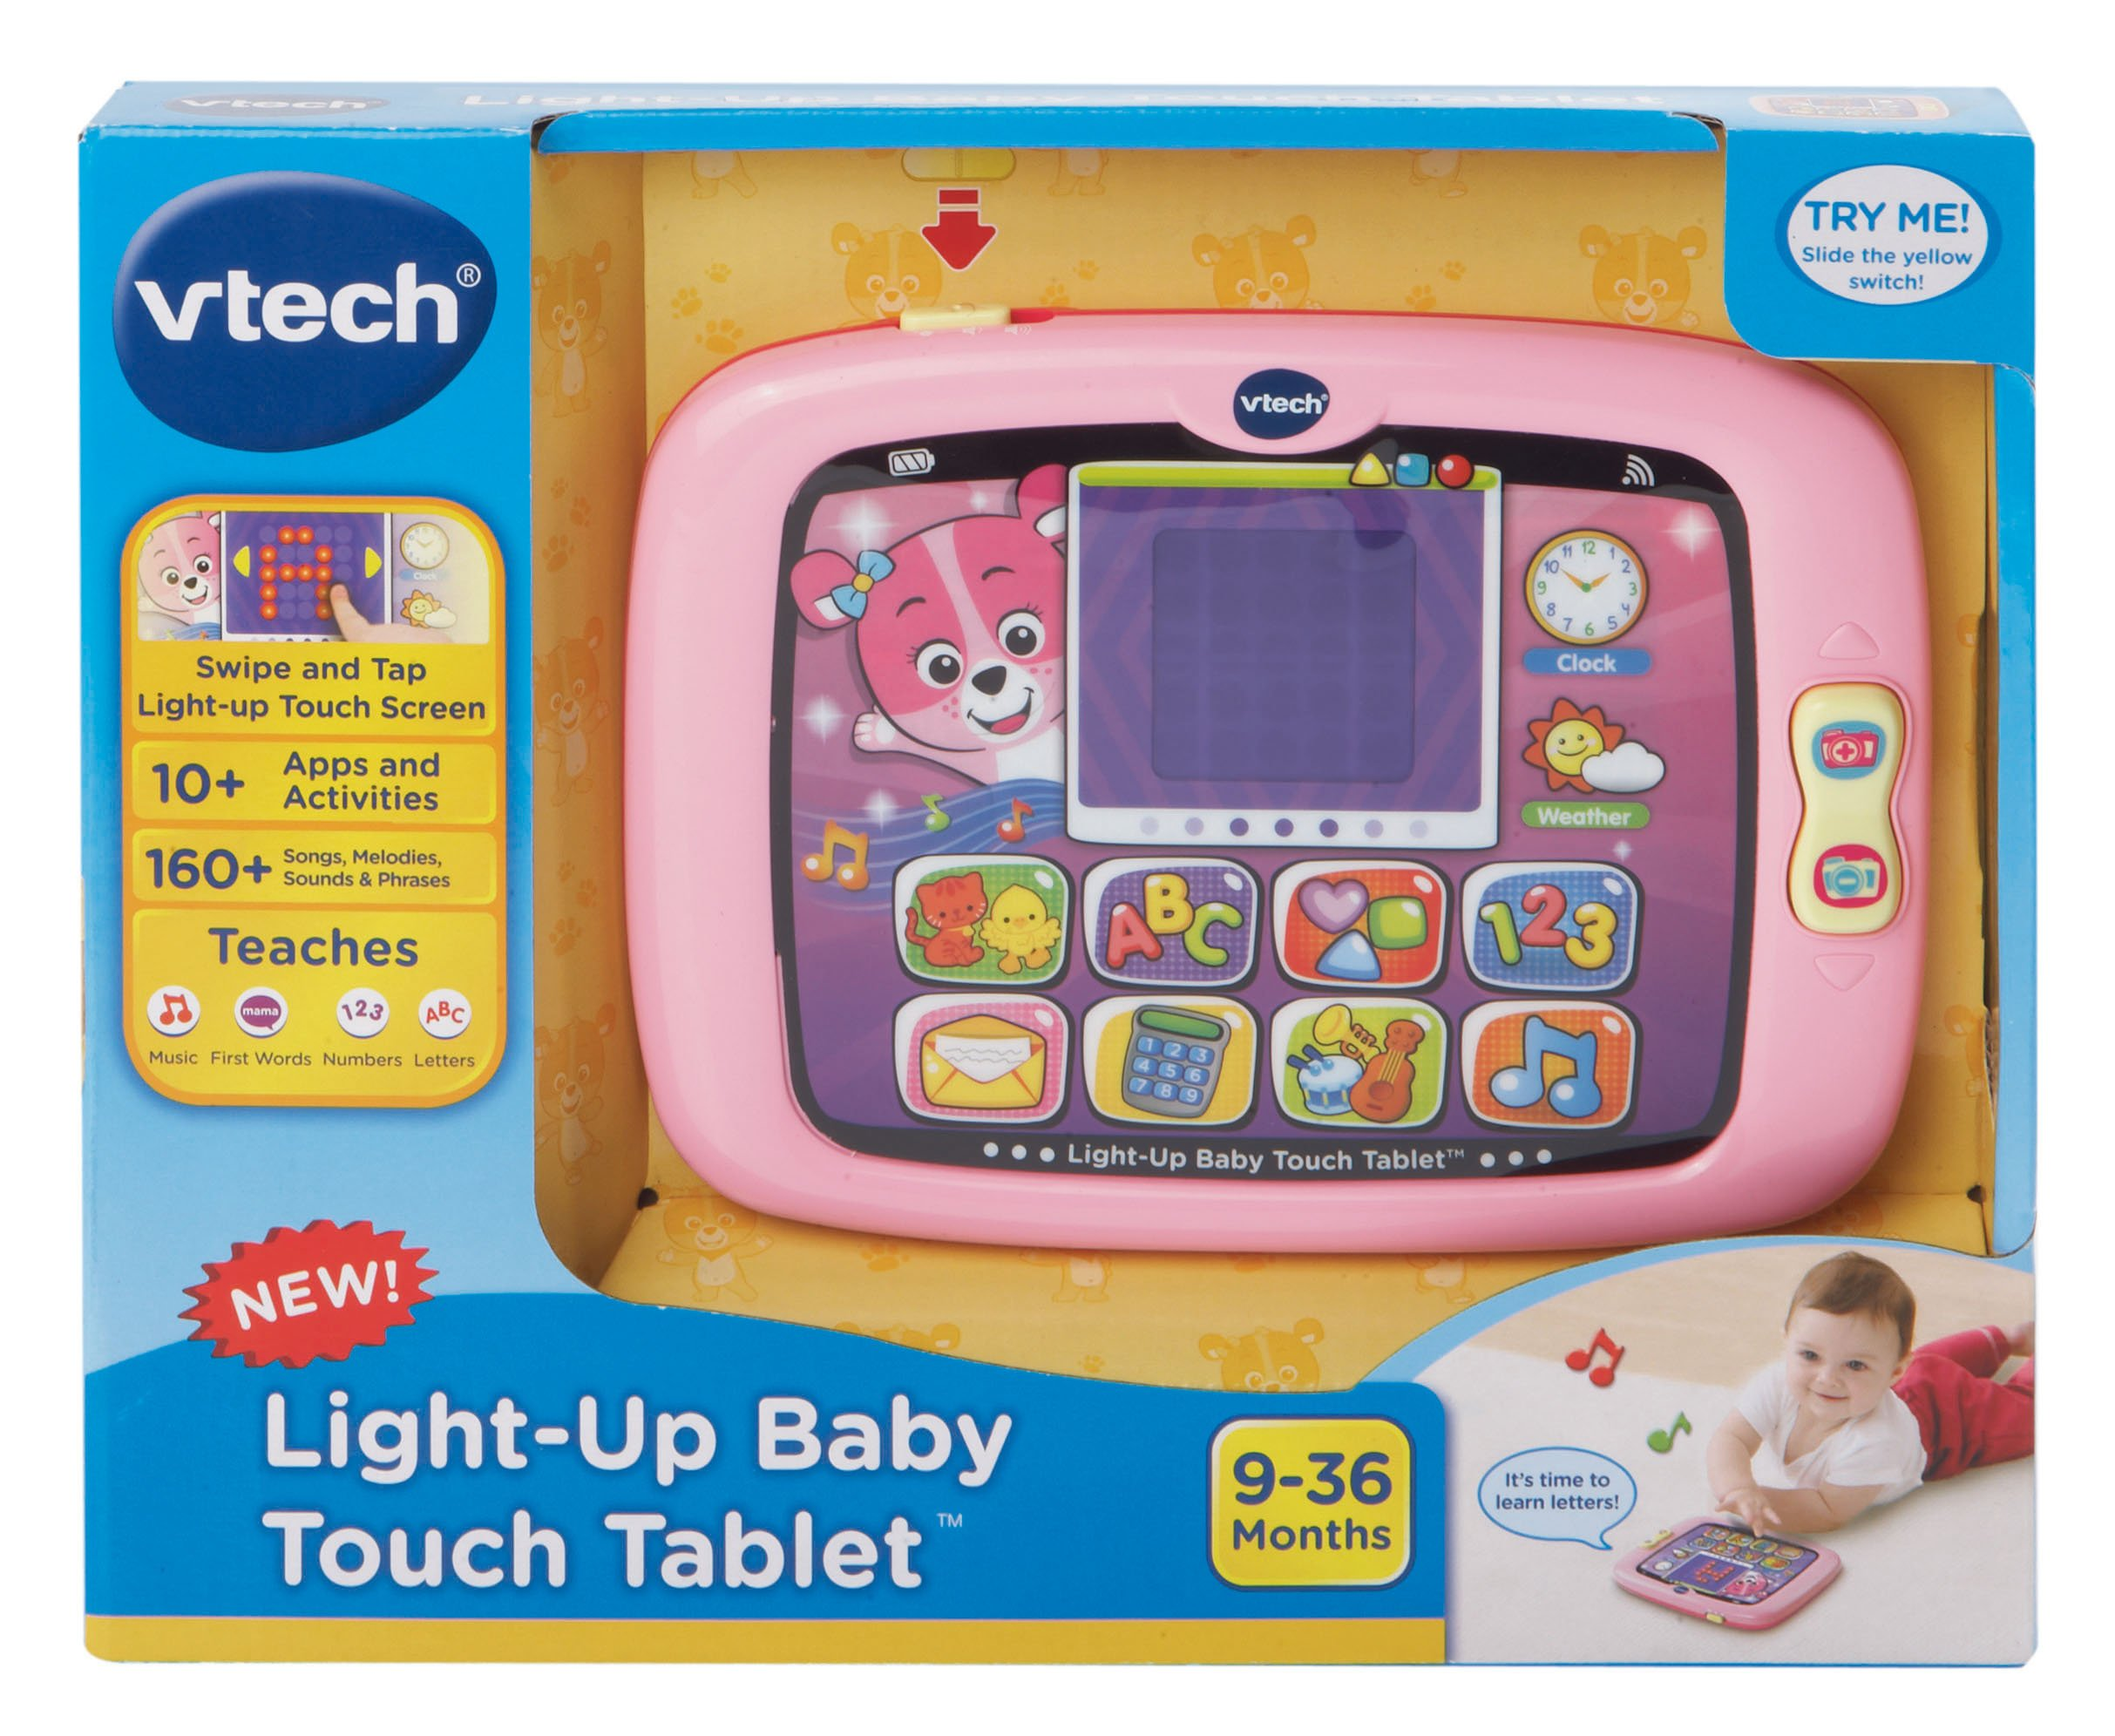 VTech Light-Up Baby Touch Tablet, Pink by VTech (Image #4)